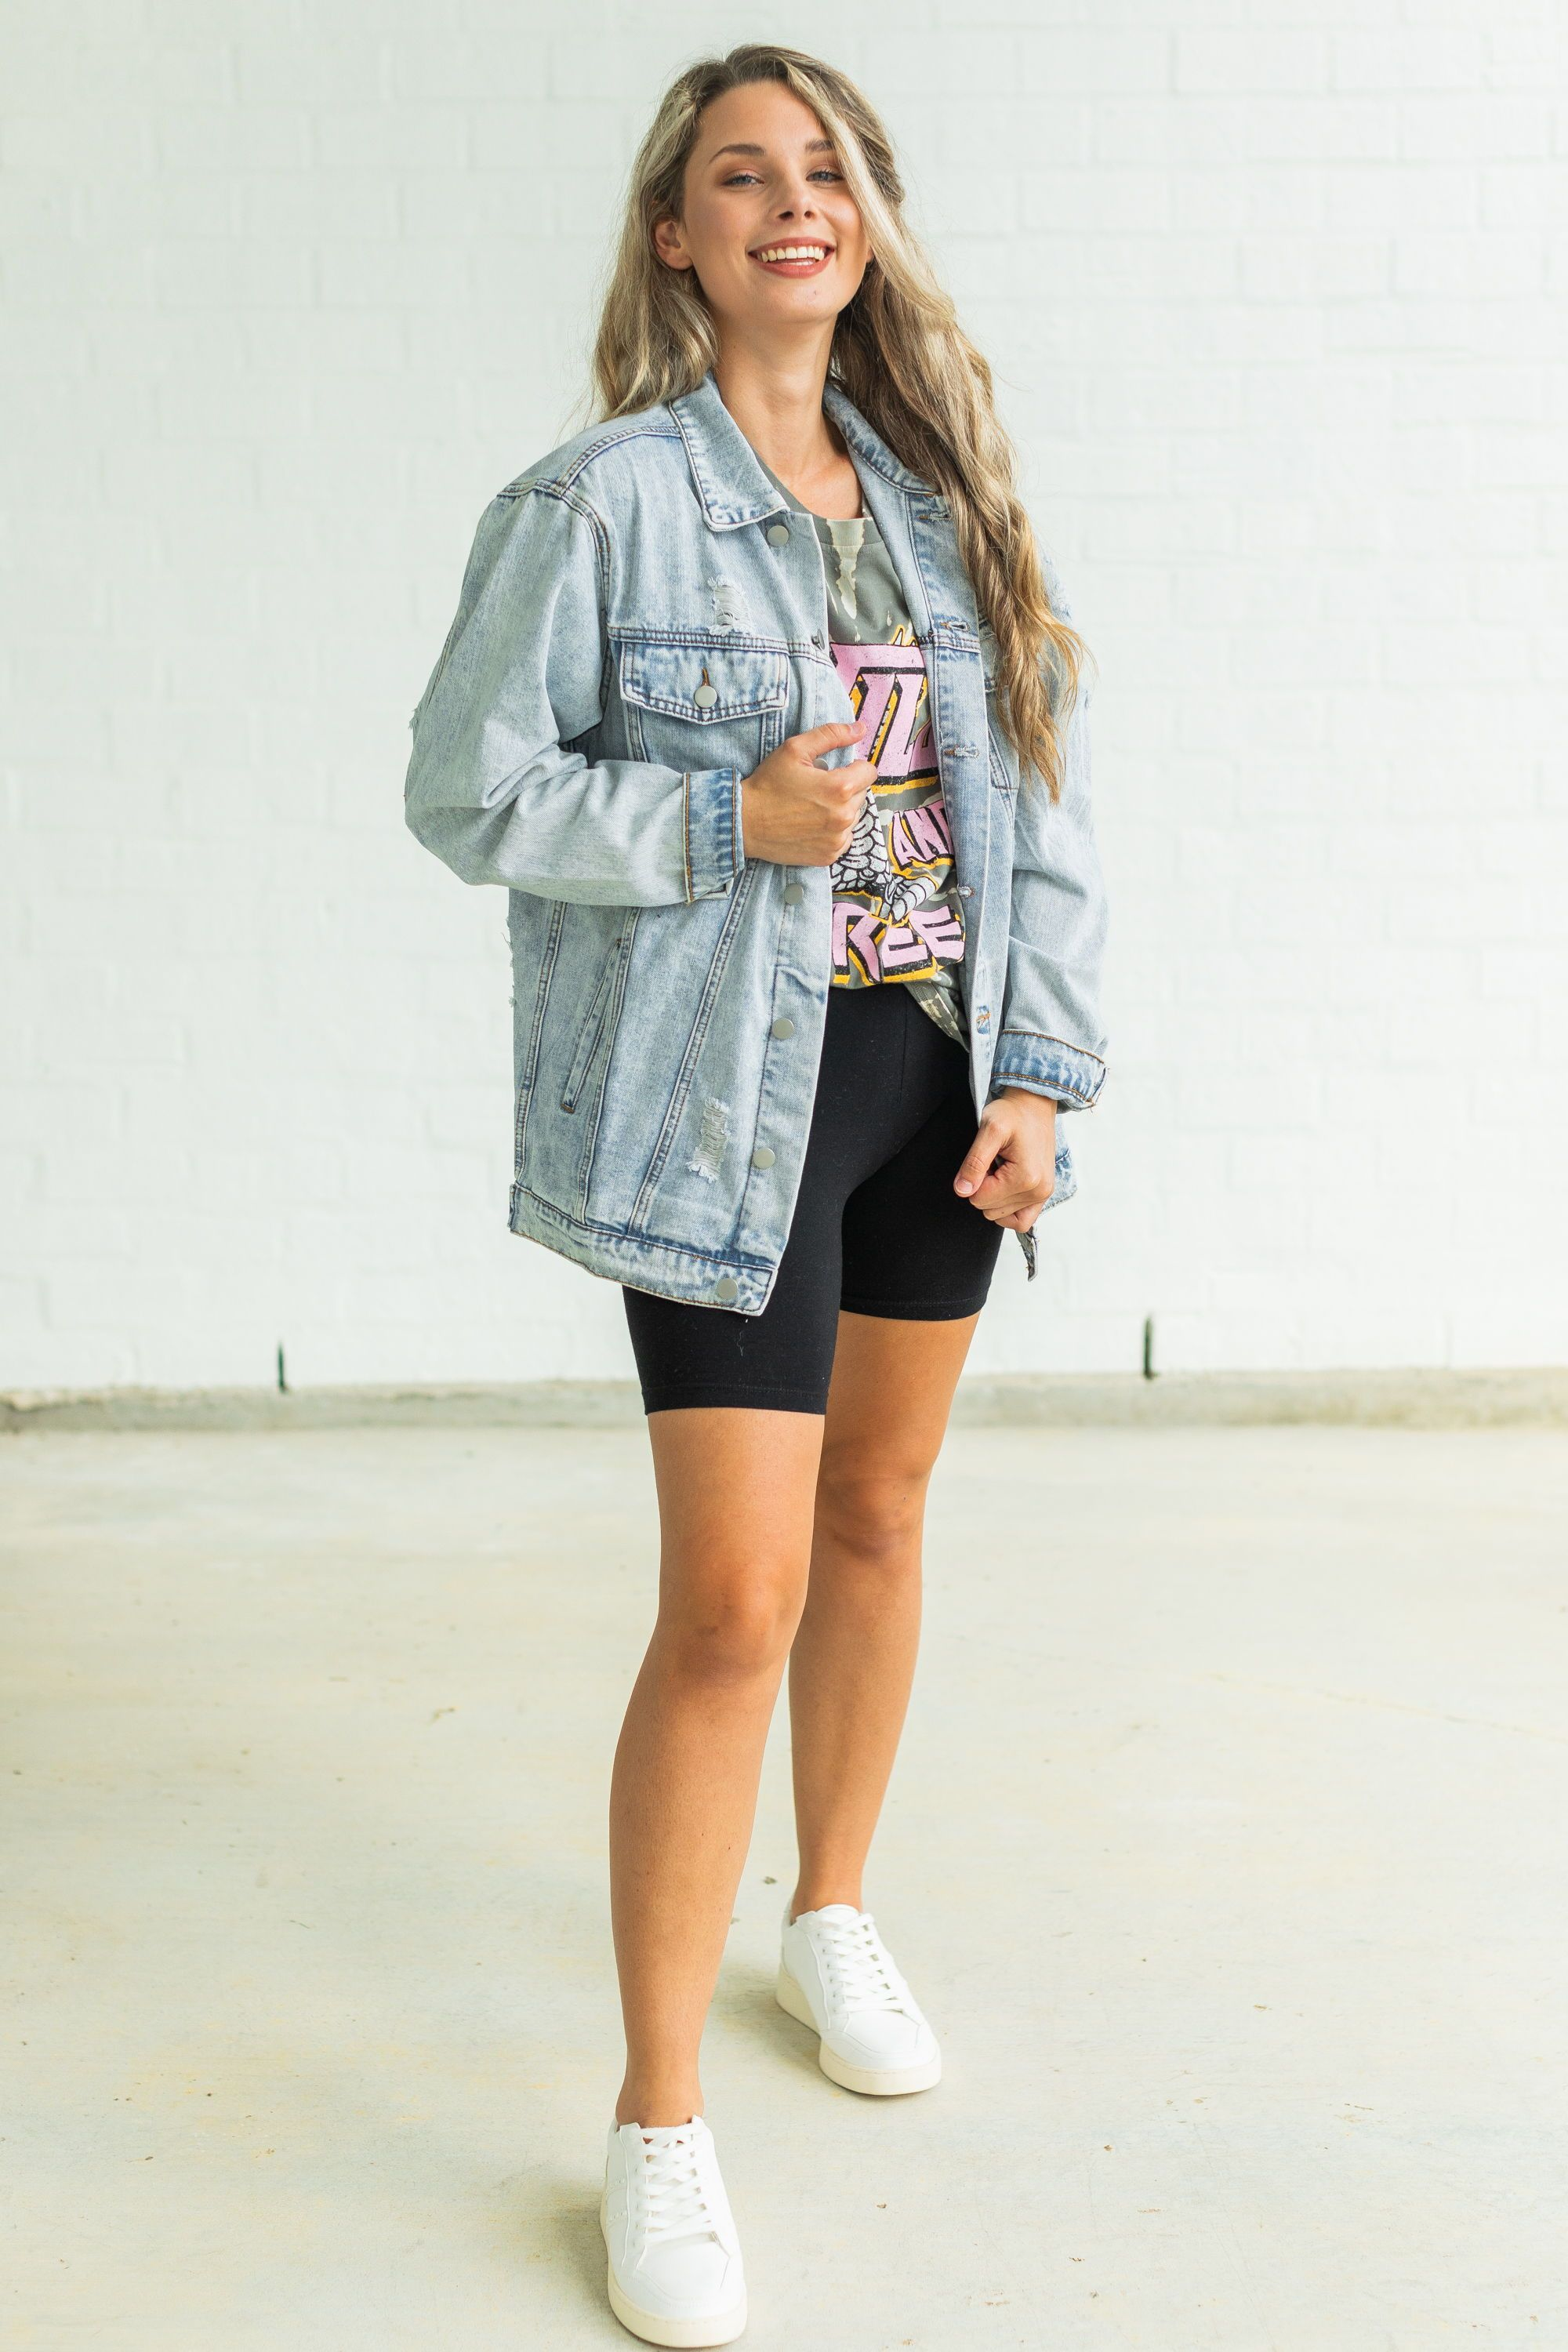 Oversized Jean Jacket Biker Shorts Outfit Oversized T Shirt Model Off Duty Effortlessly Chic Outfits Clothes Everyday Outfits [ 3000 x 2000 Pixel ]